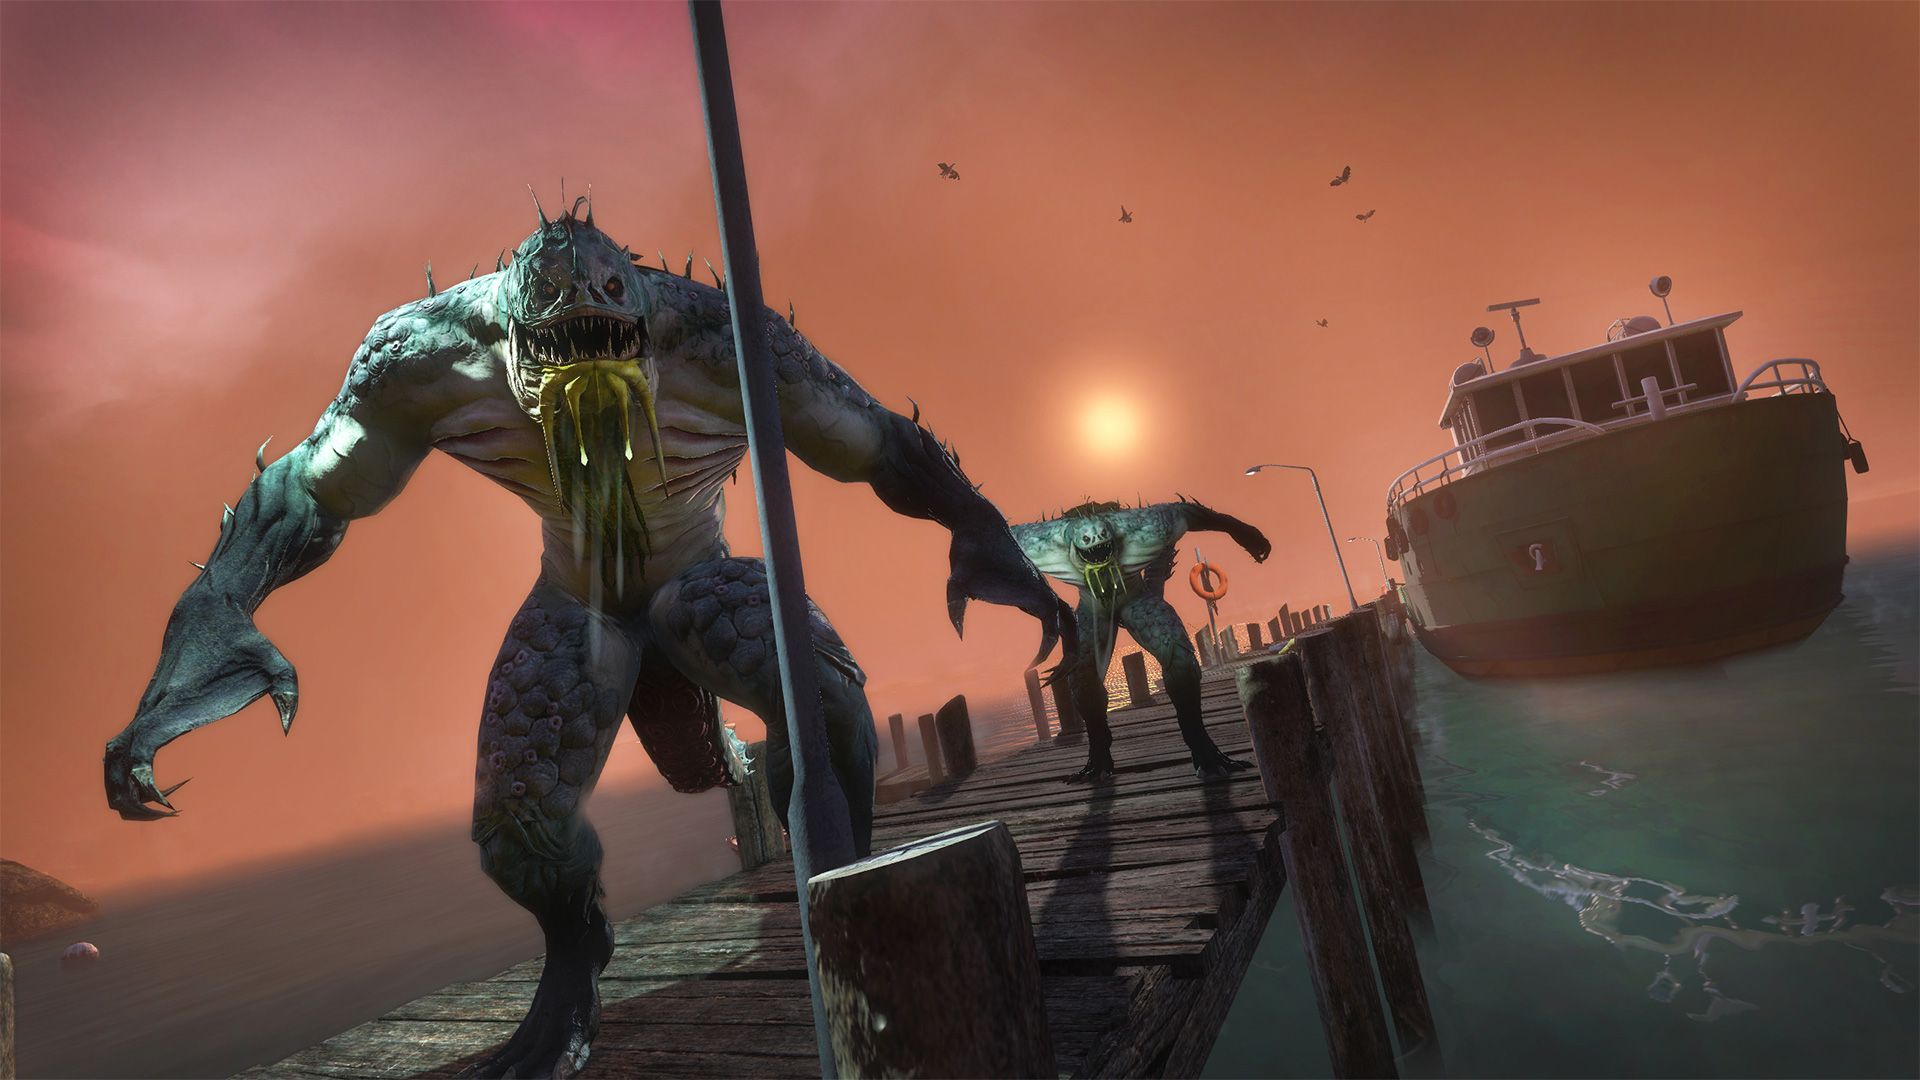 Secret world legends reveal the truth gumiabroncs Gallery